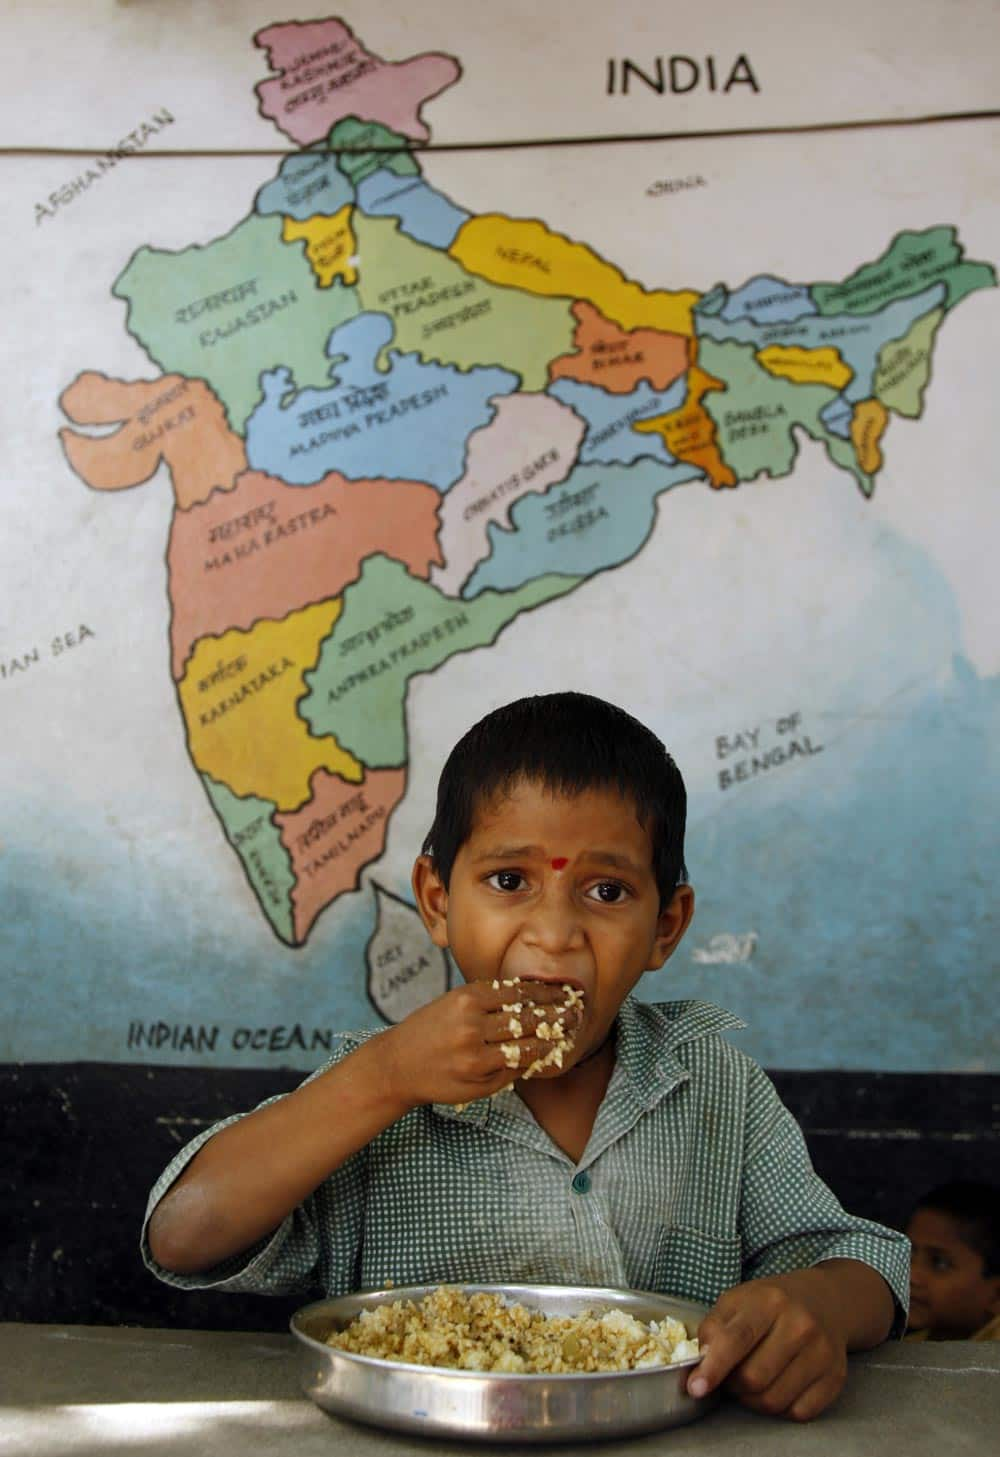 An Indian school boy eats a midday meal provided free at a government school in Hyderabad.